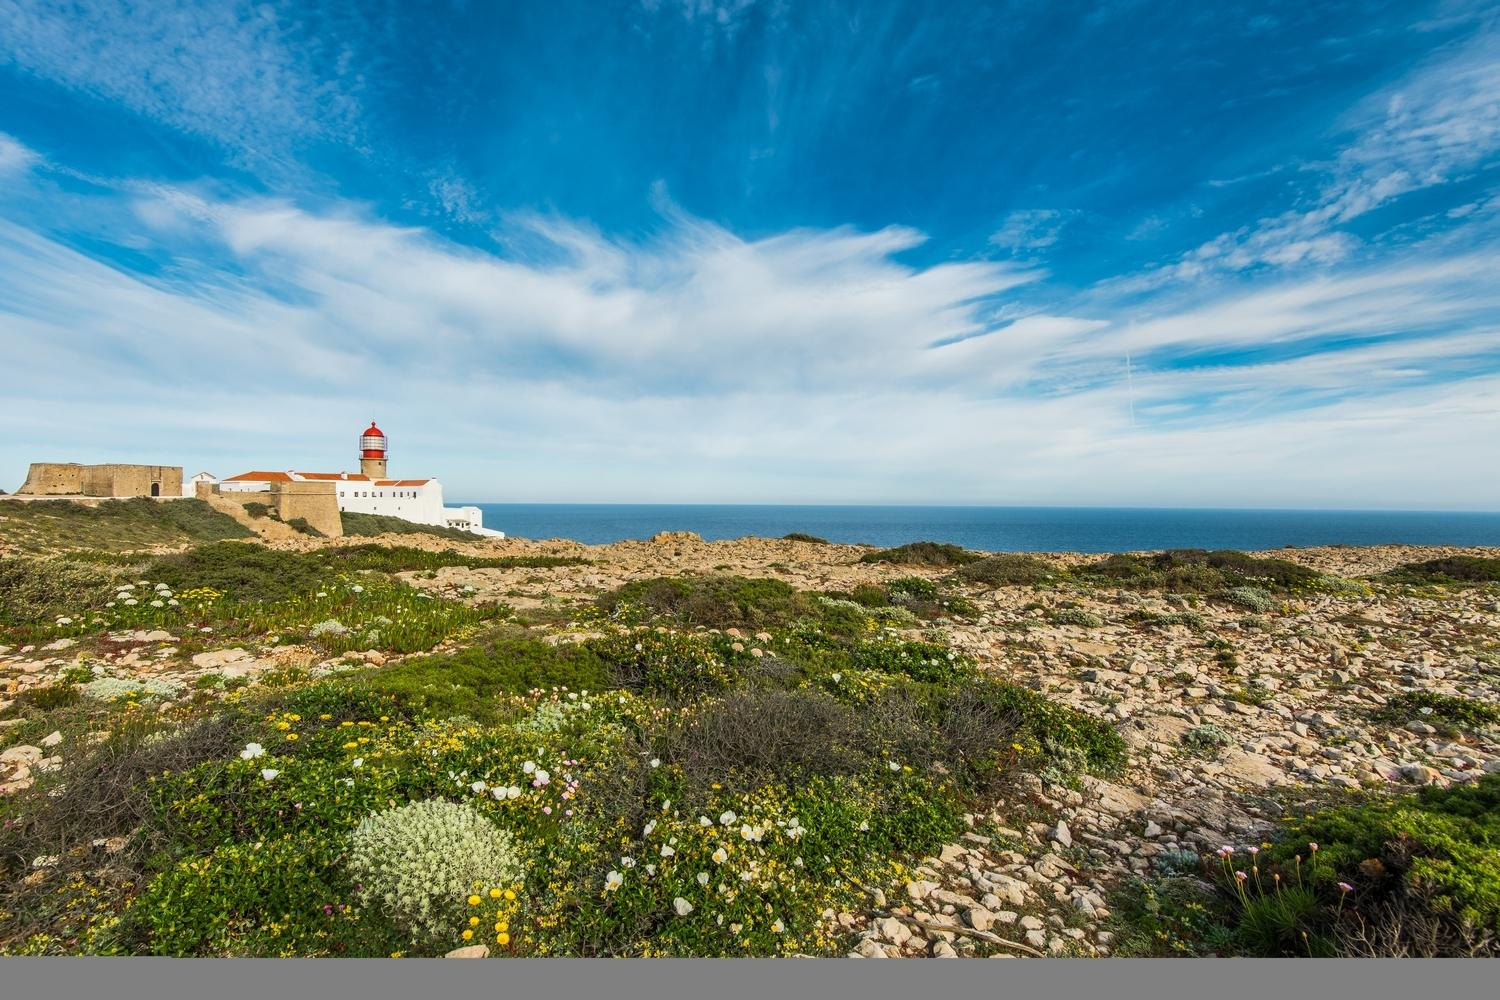 Rota Vicentina: The Wild Algarve Self-Guided Walking Holiday